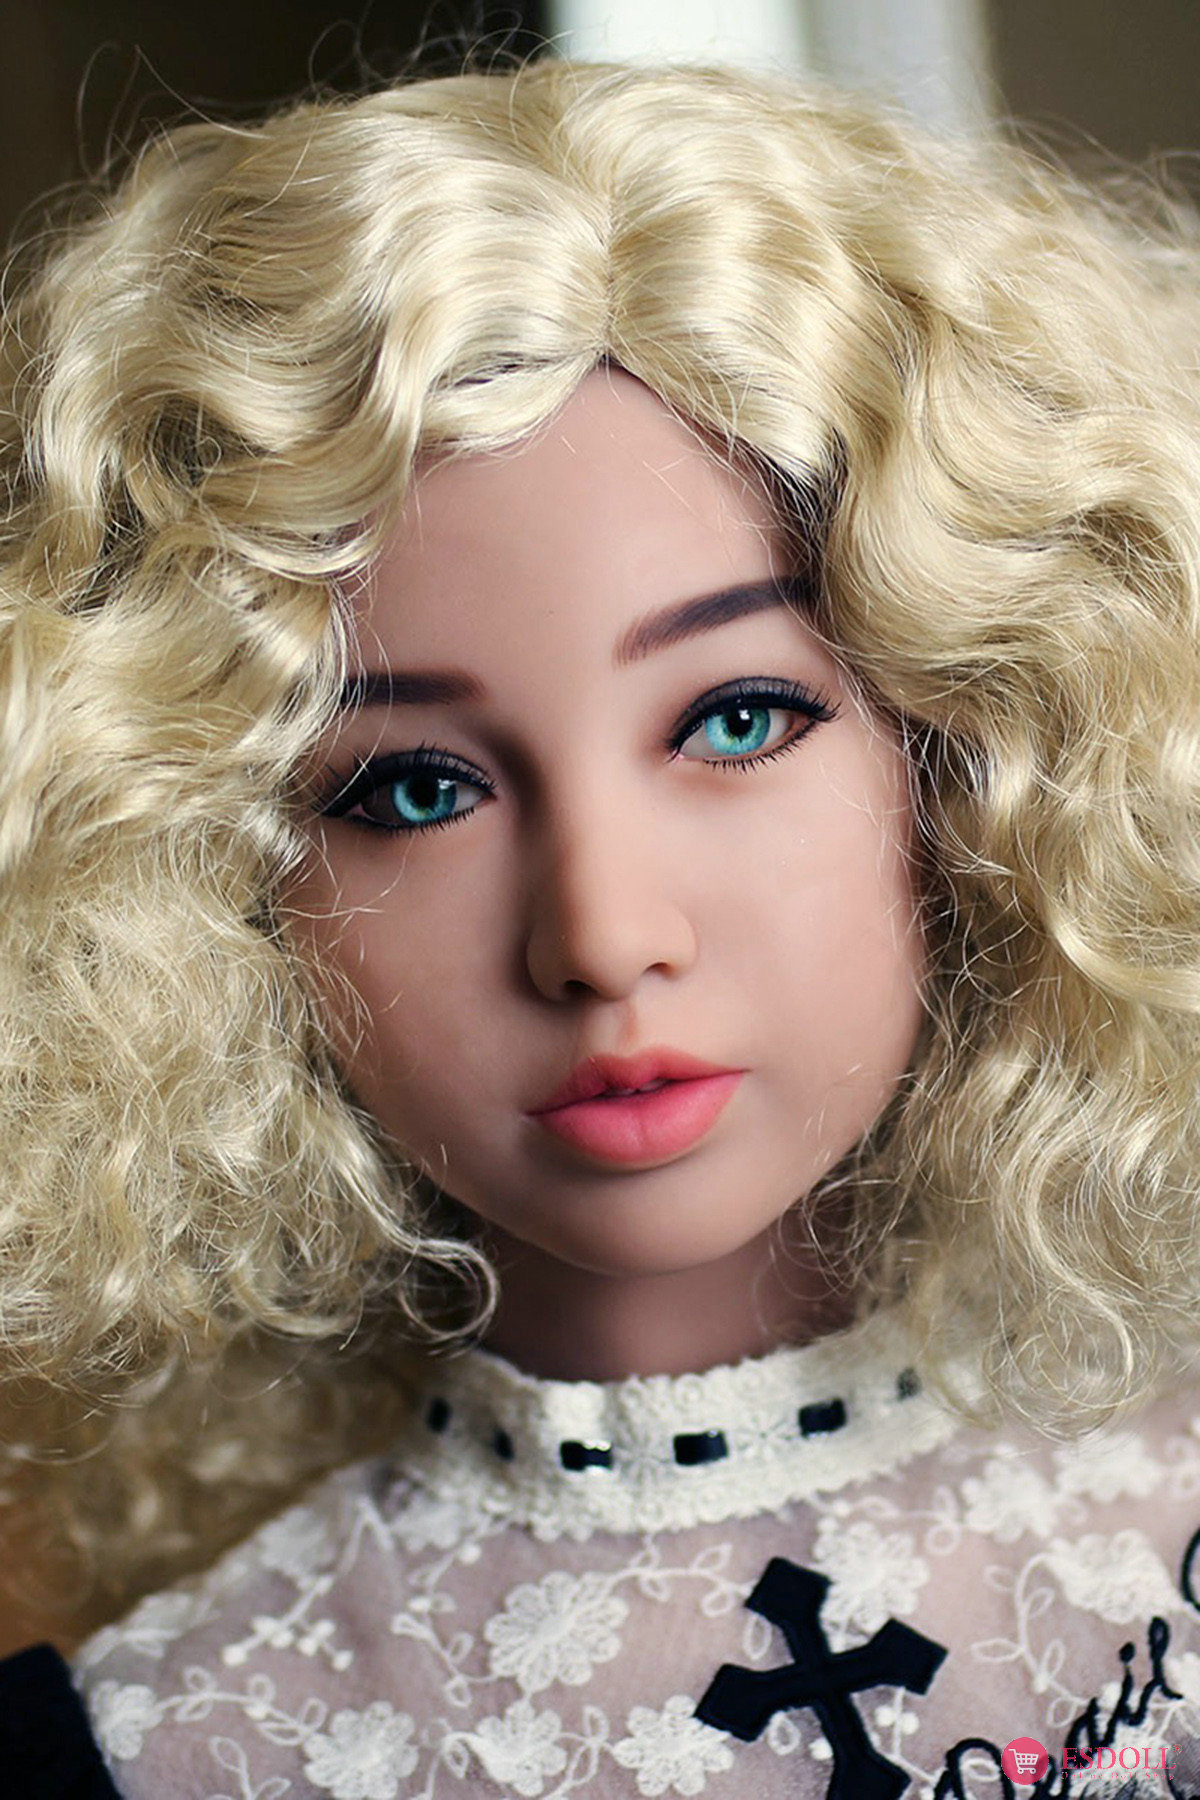 156cm 5.12ft Lily sex doll - 2